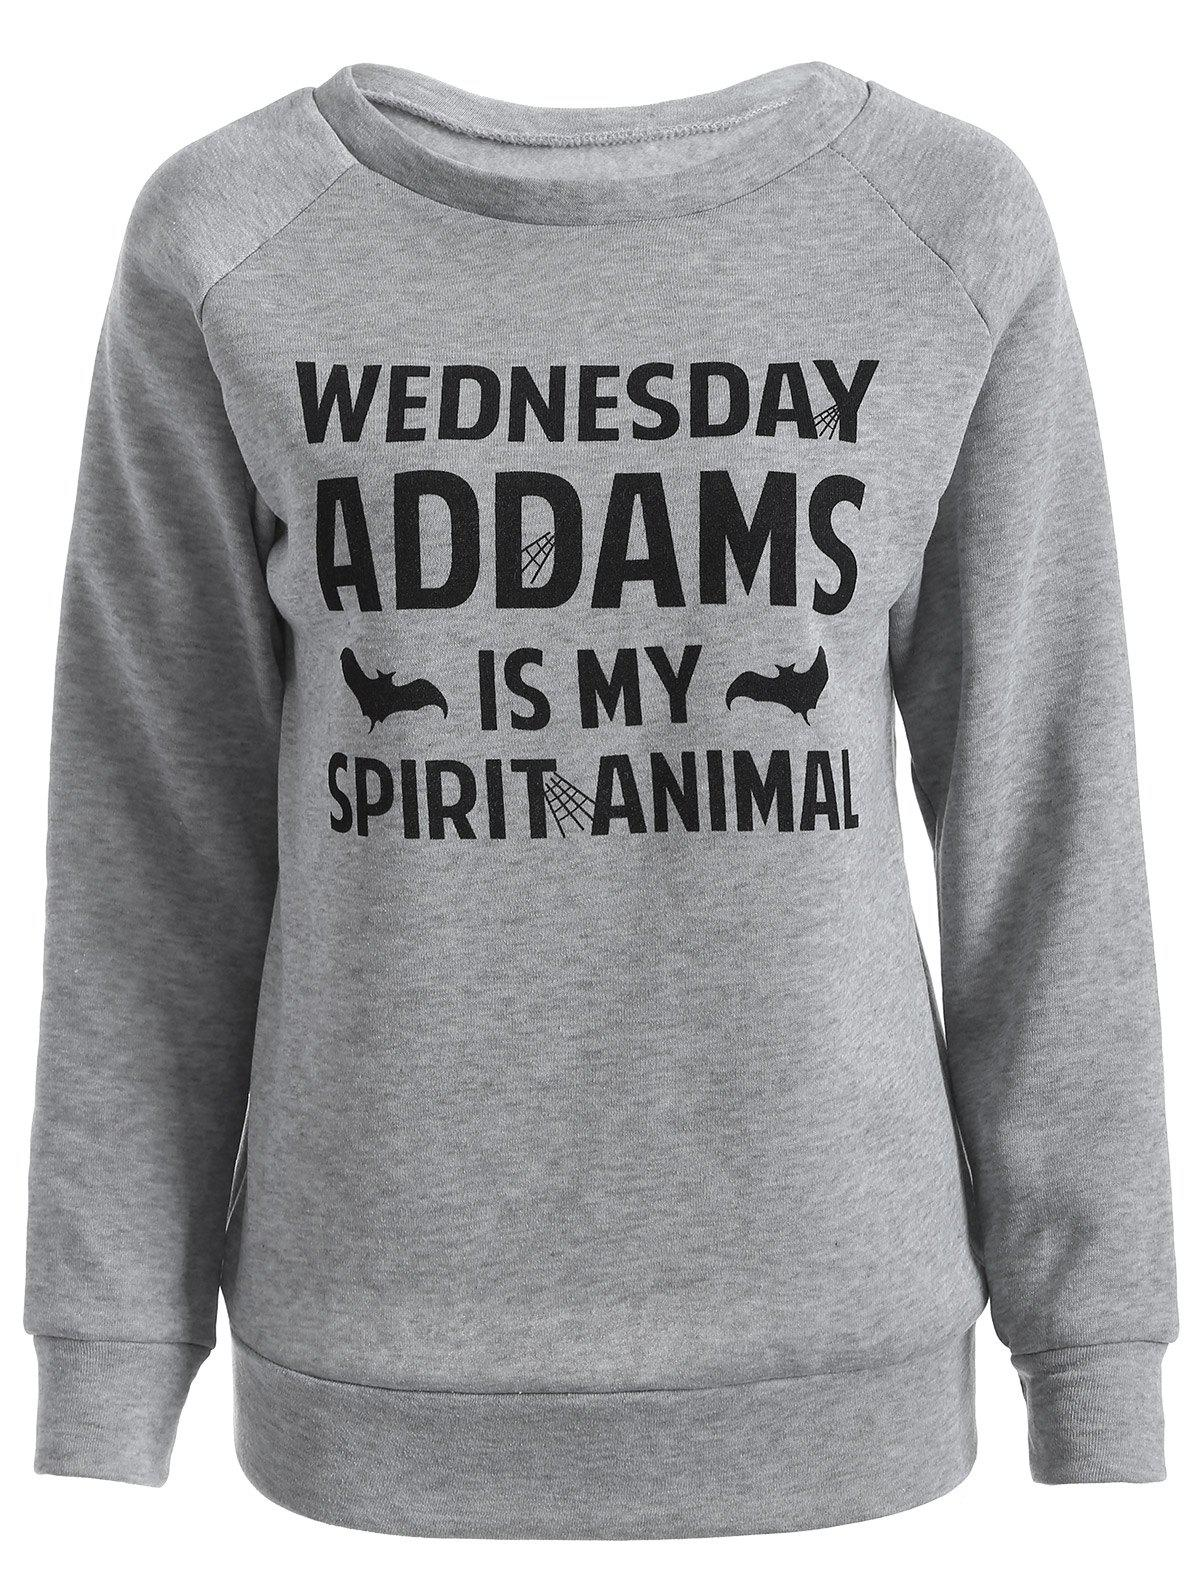 Wednesday  Addams Letter Crew Neck Sweatshirt - GRAY 2XL